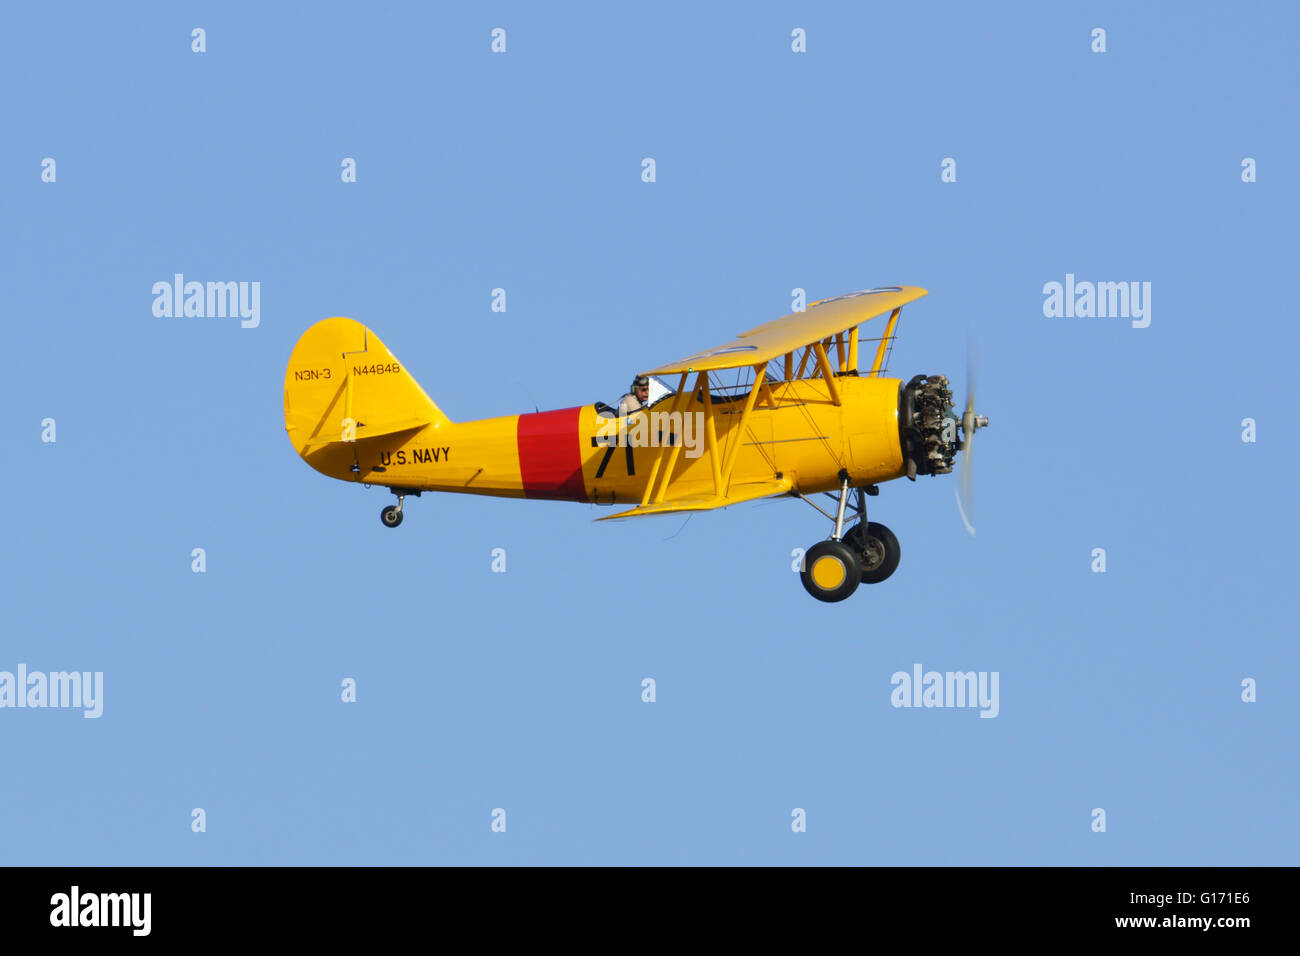 Airplane vintage bi-plane at 2016 Planes of Fame Air Show in Chino, California - Stock Image